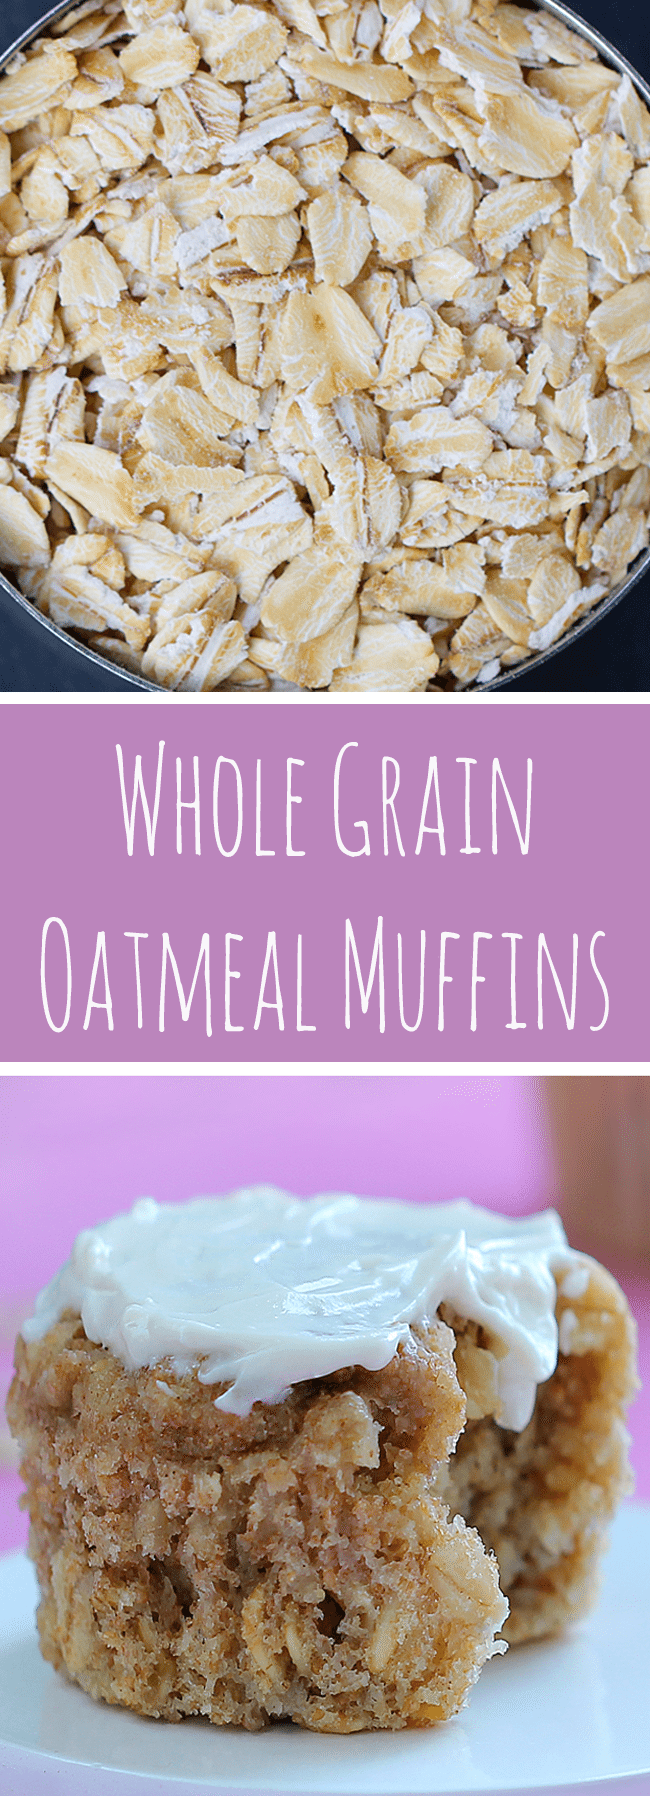 Oatmeal Muffins - Ingredients: 1 1/2 cups rolled oats, 1 tsp baking powder, 1/2 tsp cinnamon, 2 tsp vanilla, 1/4 cup... Full recipe: https://chocolatecoveredkatie.com/2014/01/06/oatmeal-muffins/ @choccoveredkt